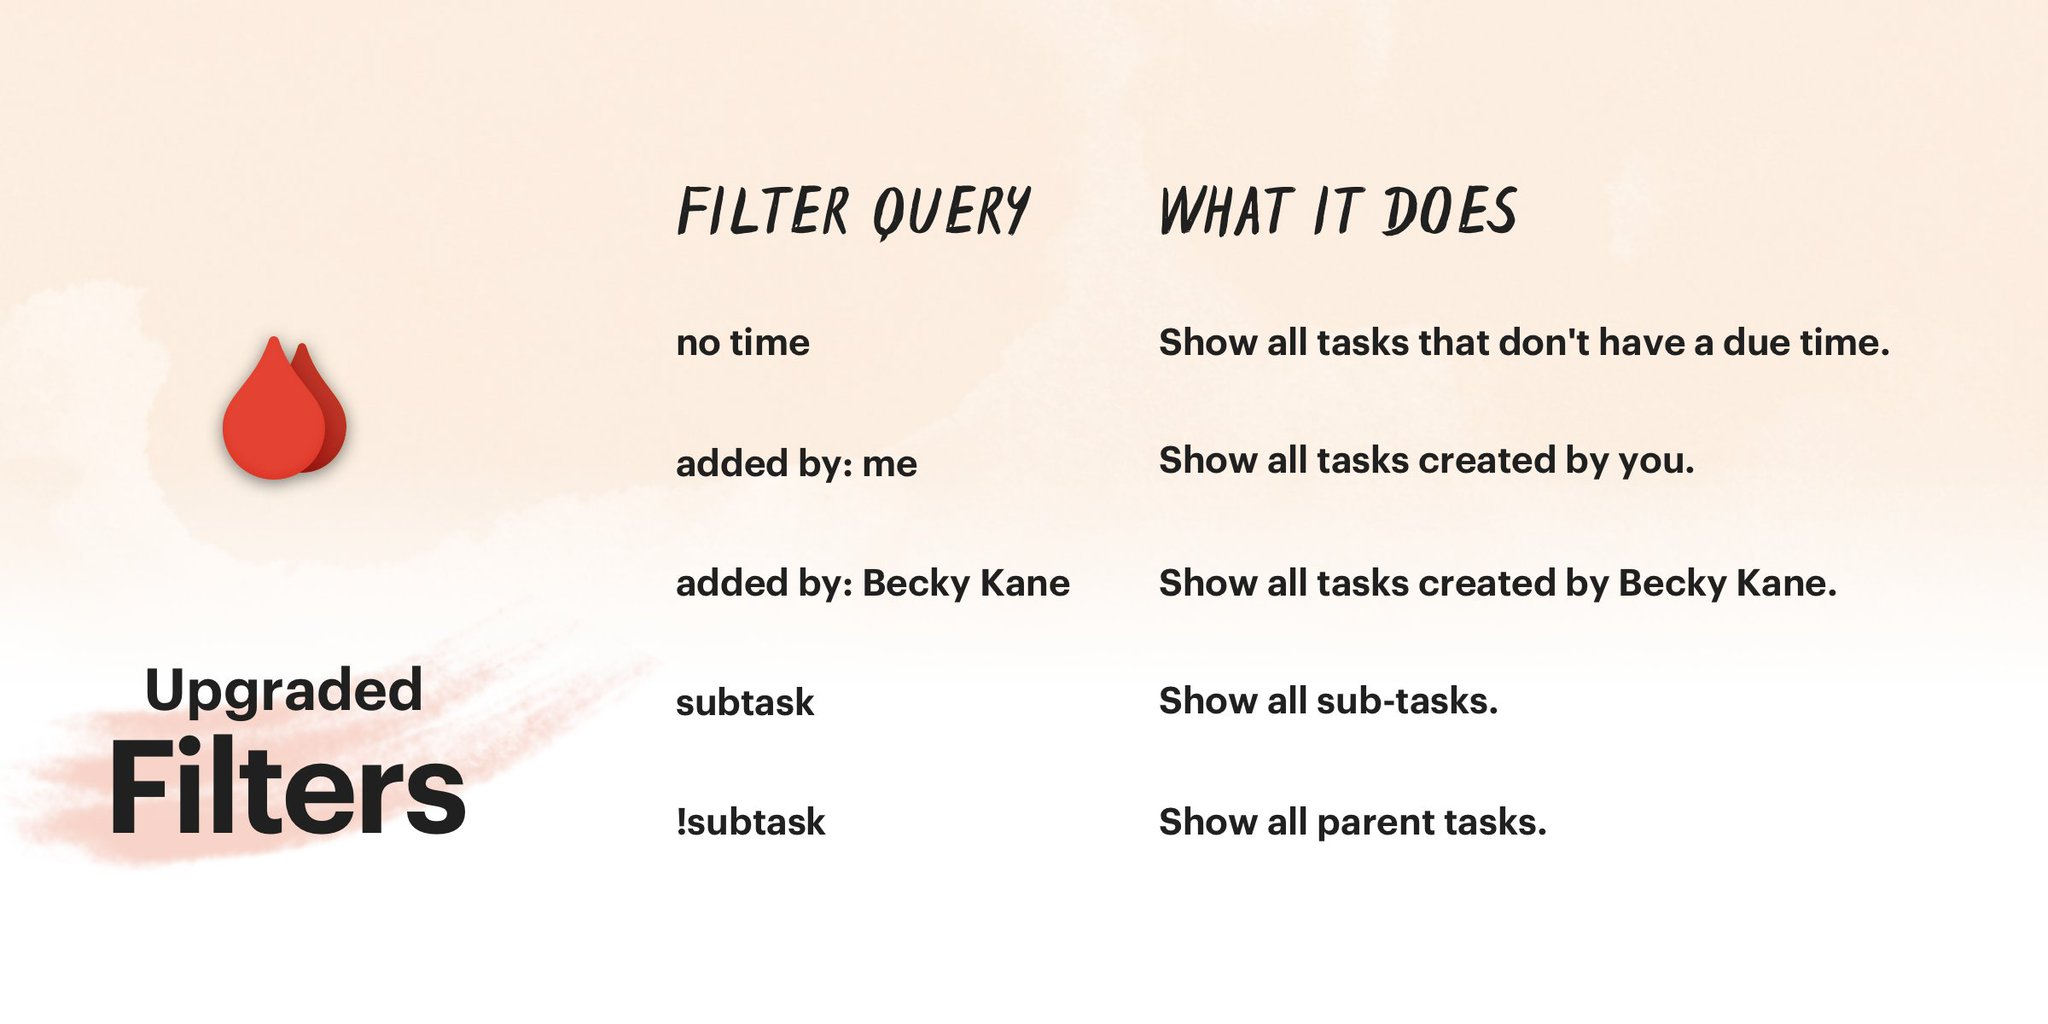 Todoist On Twitter We Ve Added More Ways To Use Filters In Todoist You Can Now See Parent Tasks Or Sub Tasks Tasks Added By A Specific Person Tasks That Have No Due